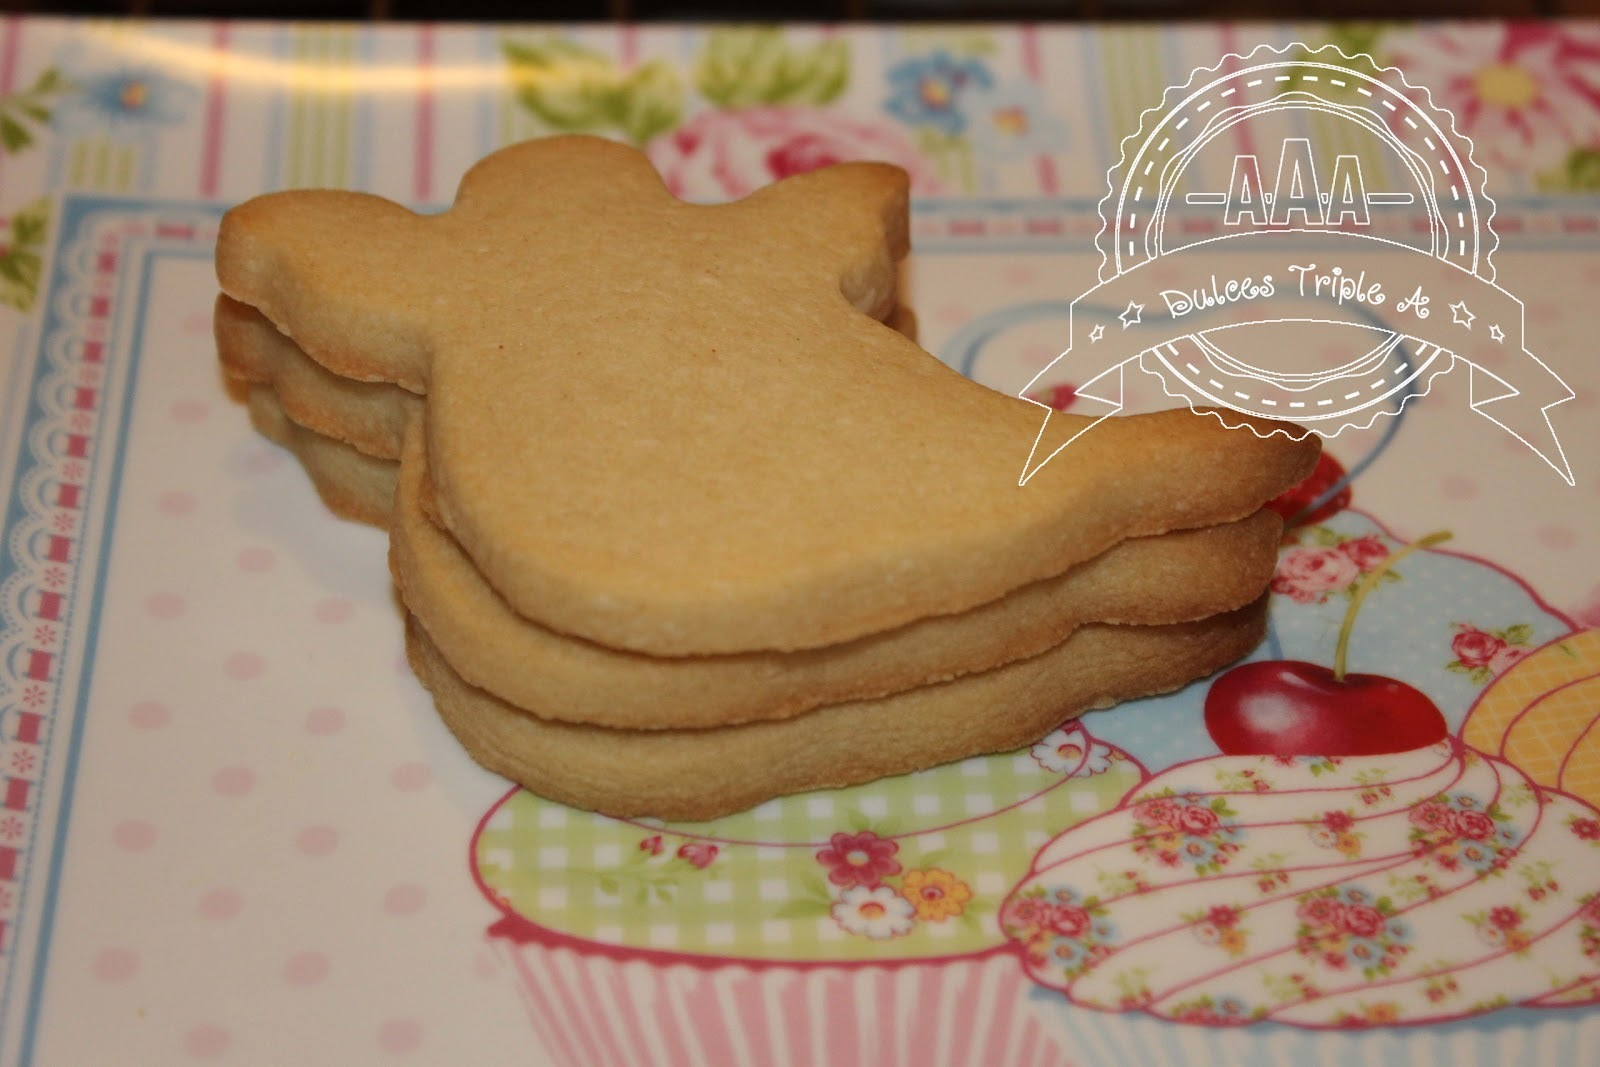 Receta Básica de Galletas para Decorar. Tutorial